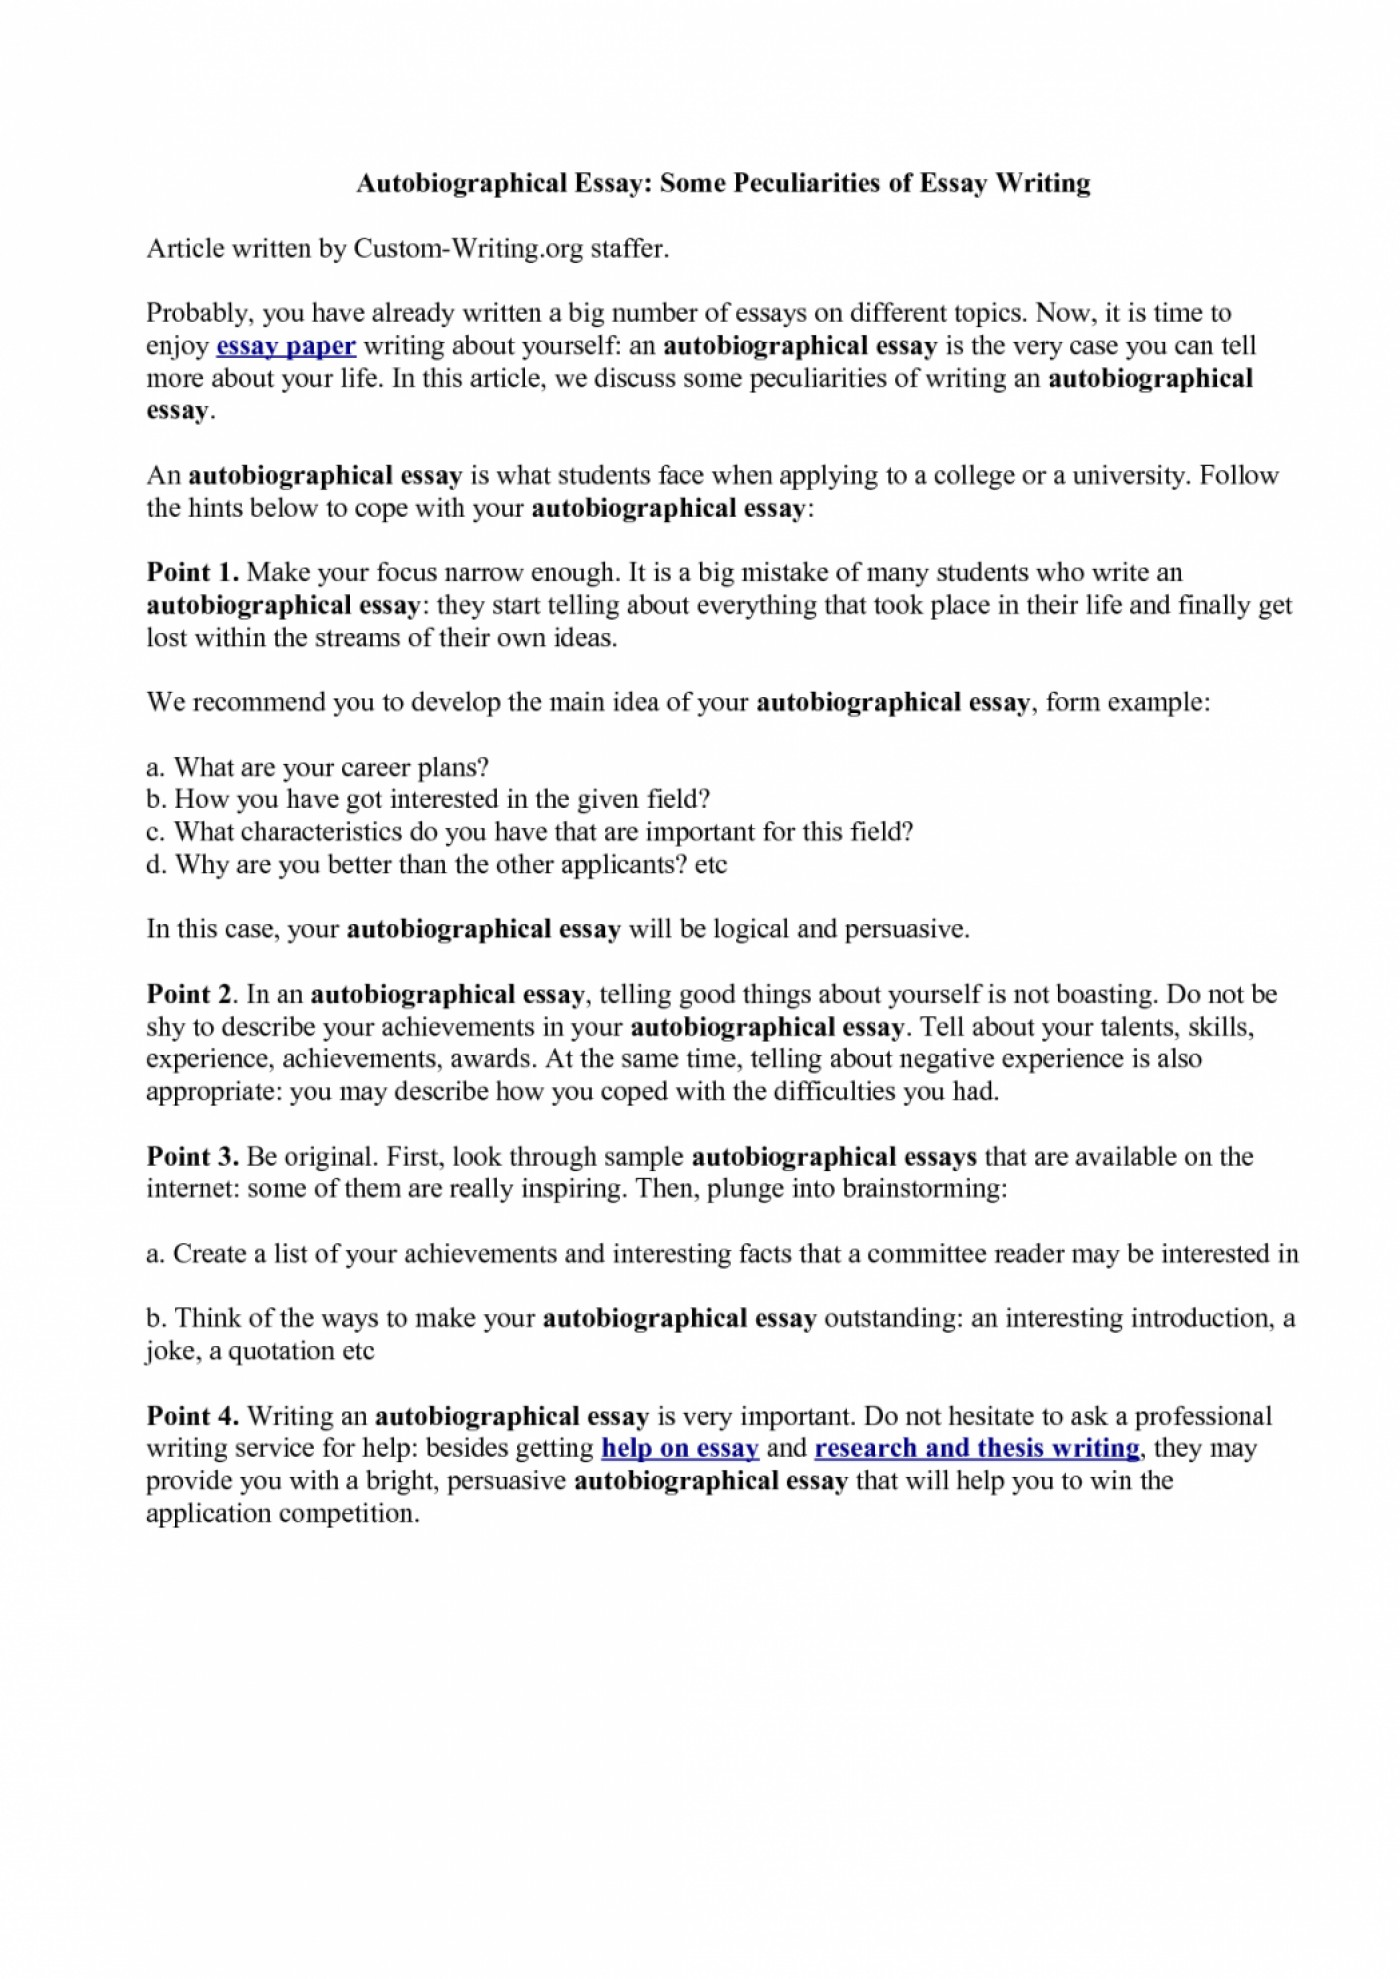 005 How To Start Autobiography Essay Example Of Telling About Yourself Shawn Weatherly Writing An Luxury Write Autobiographical For Job Written Graduate School Outline Singular Annotated Bibliography Examples A Good Scholarship 1400